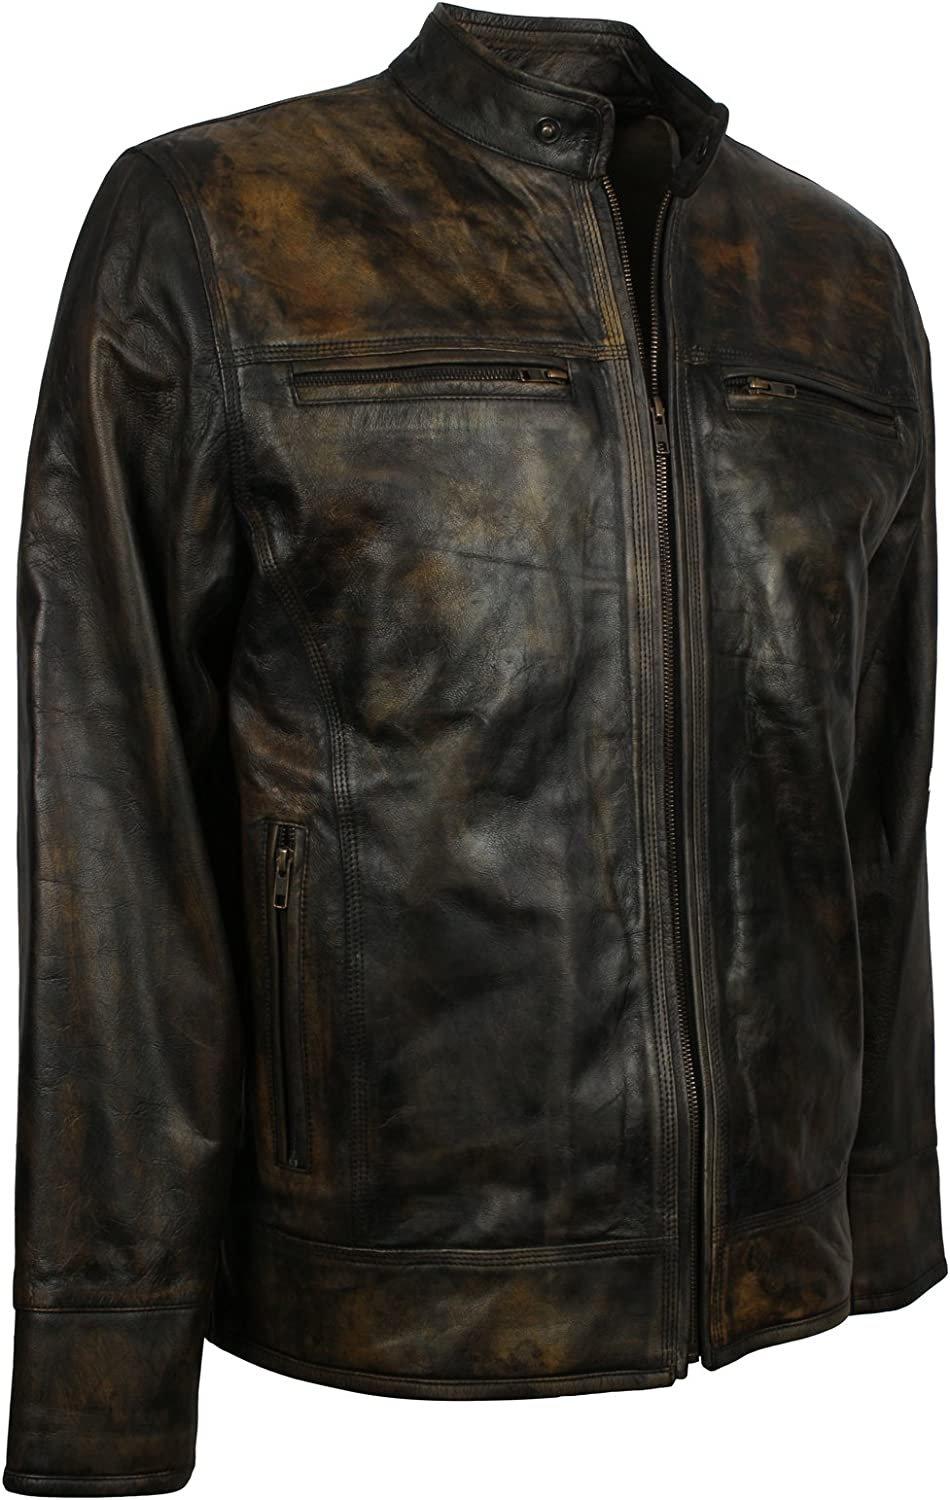 Herts Leather Tough Mens Classic Vintage Style Rusty Look HQ Genuine Leather Jacket